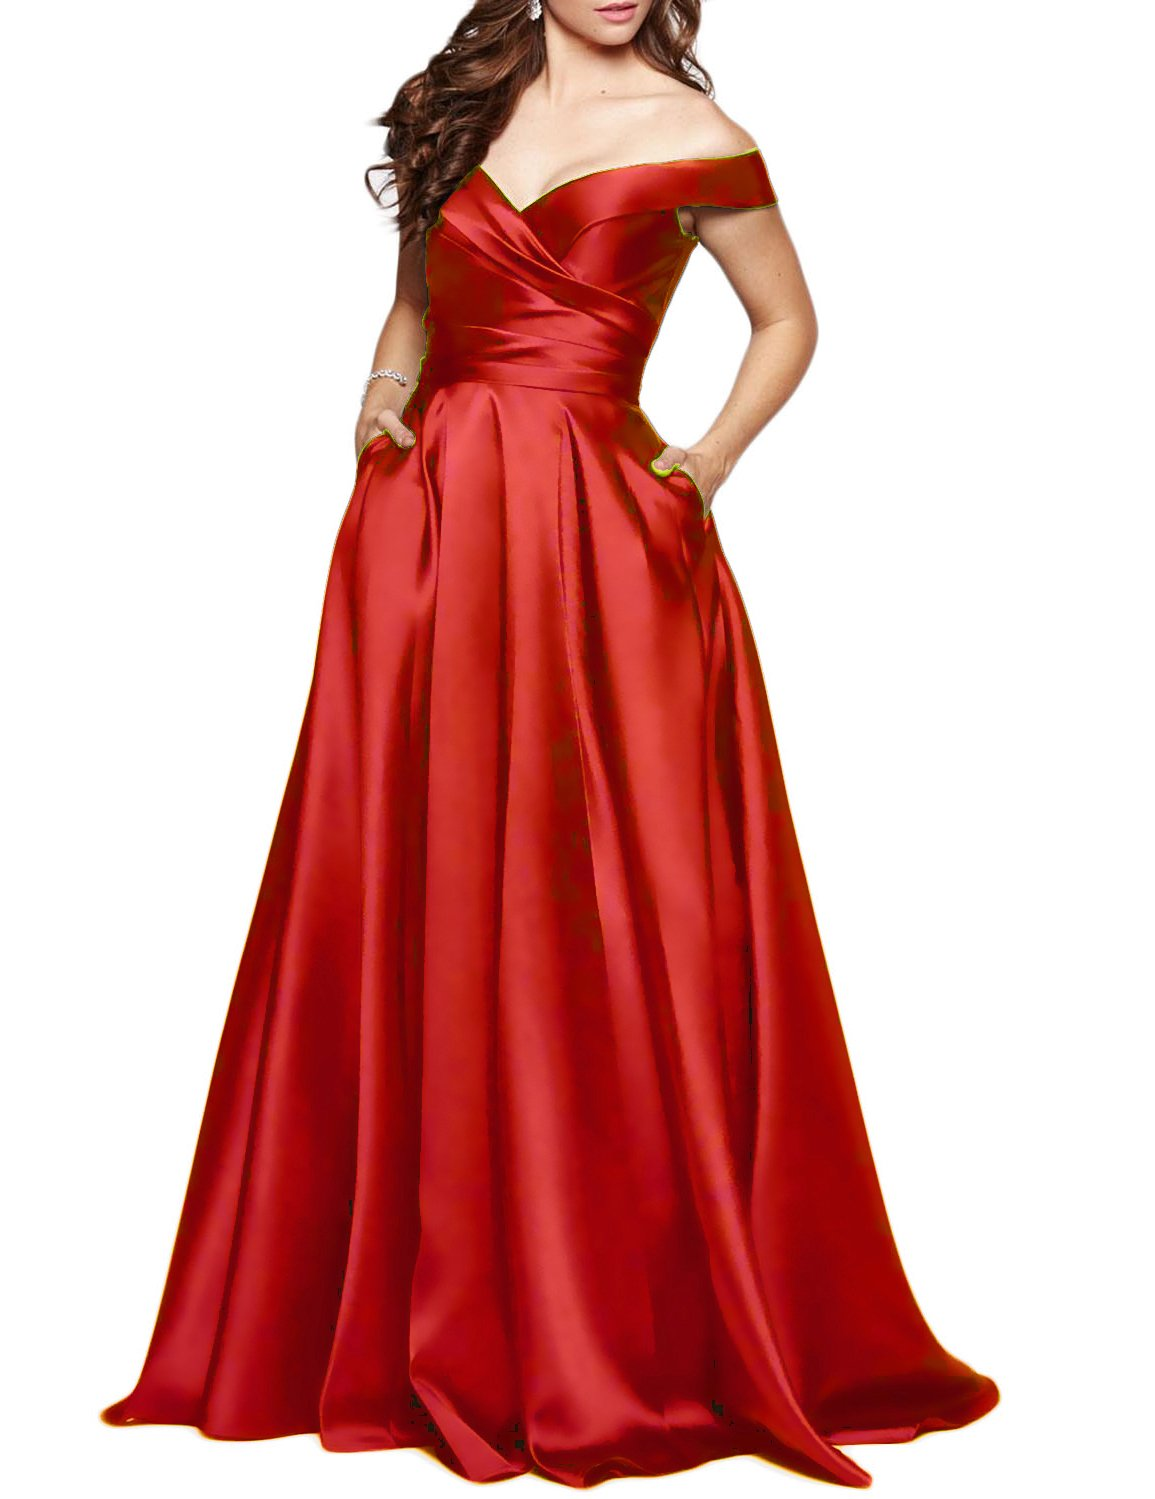 BEAUTBRIDE Women's Off Shoulder Long Prom Dress Evening Gown with Pocket Red 22W